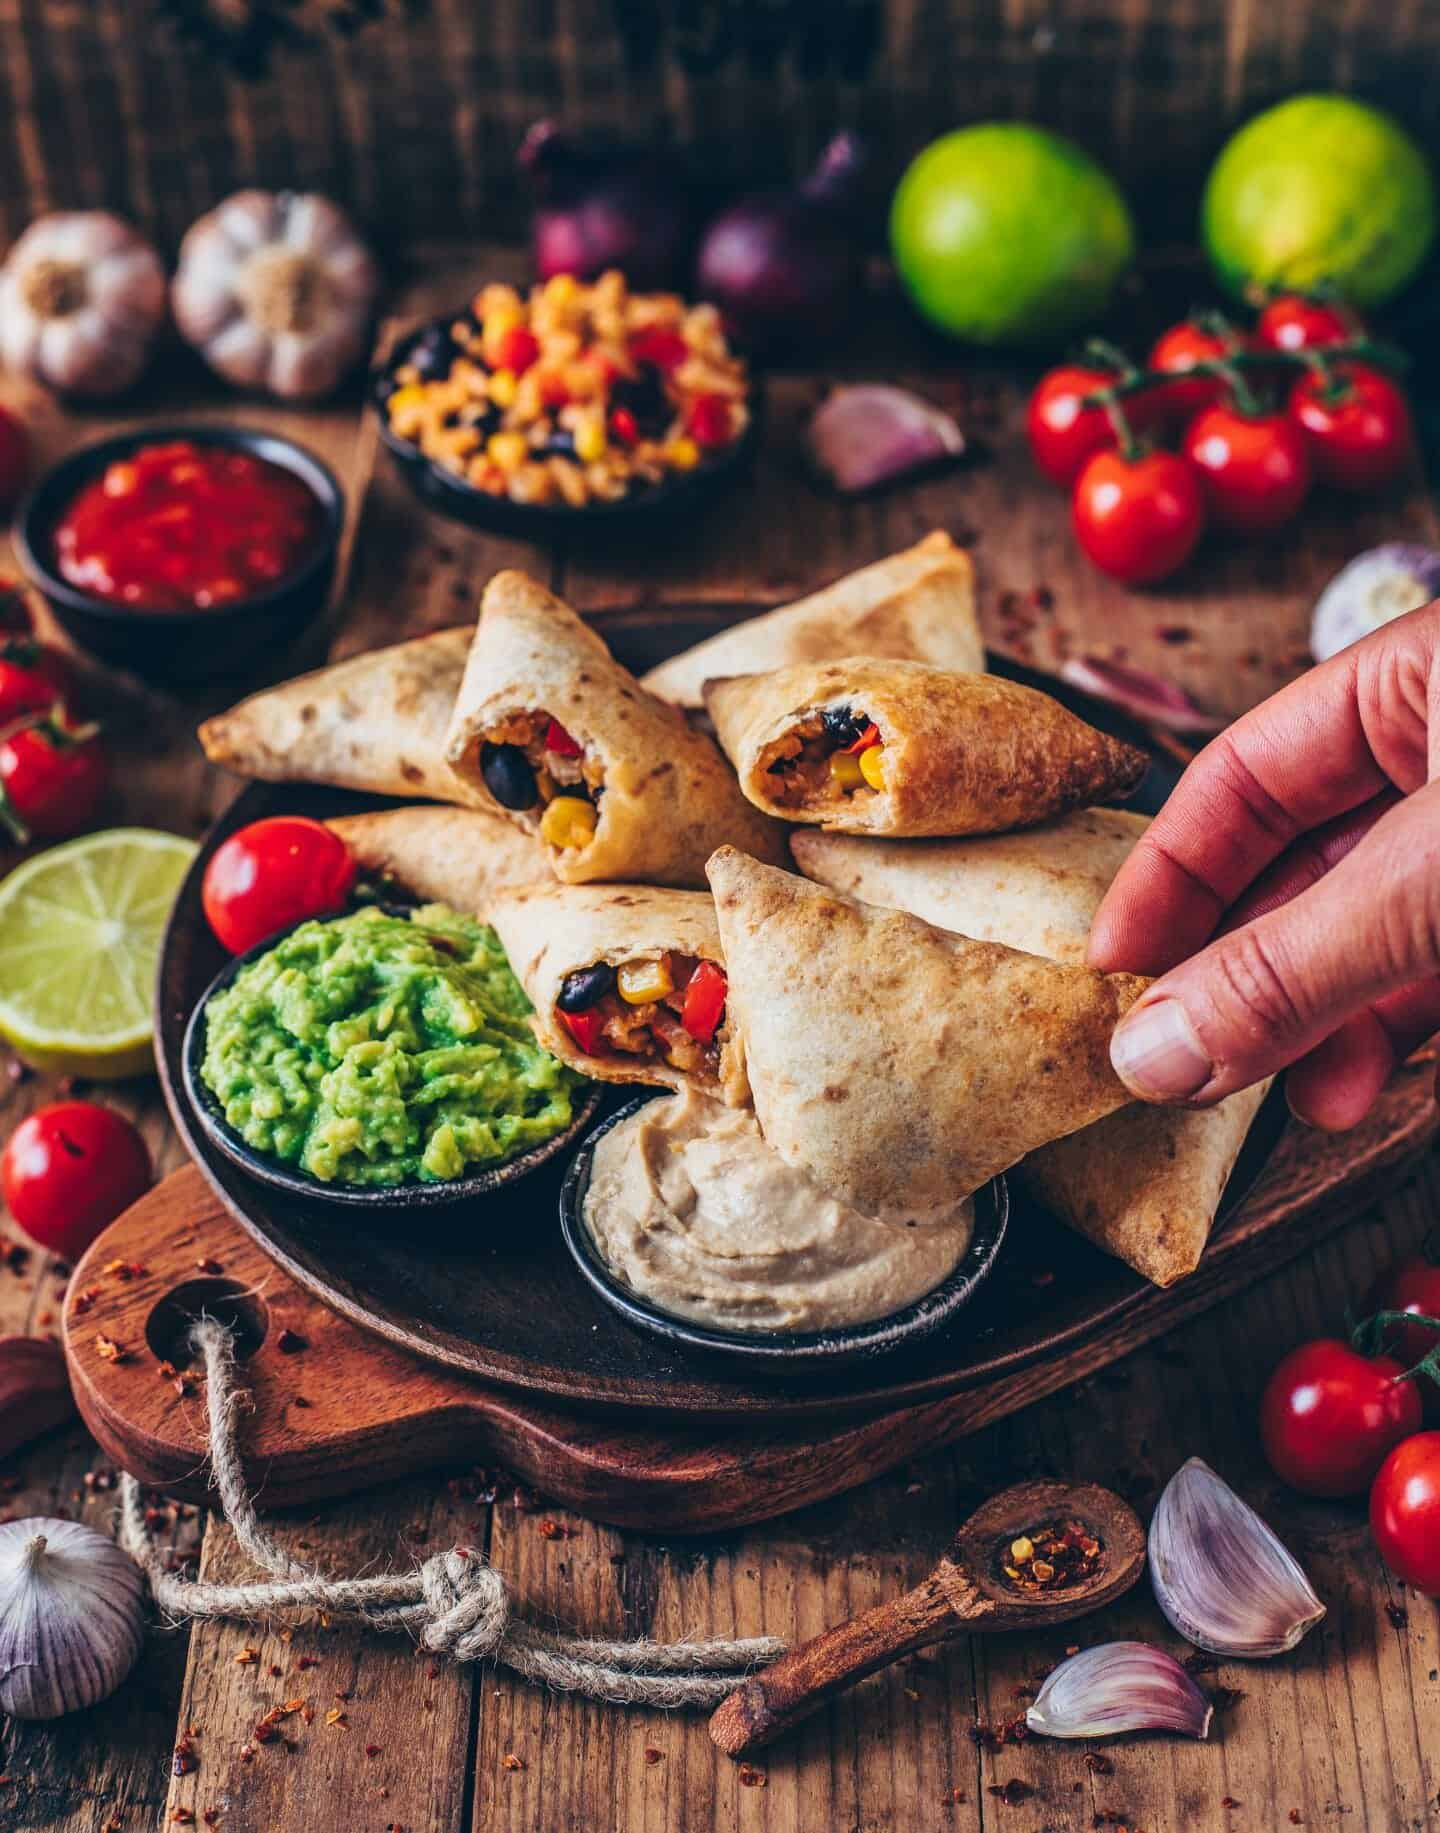 vegan burrito samosas with guacamole and cashew dip